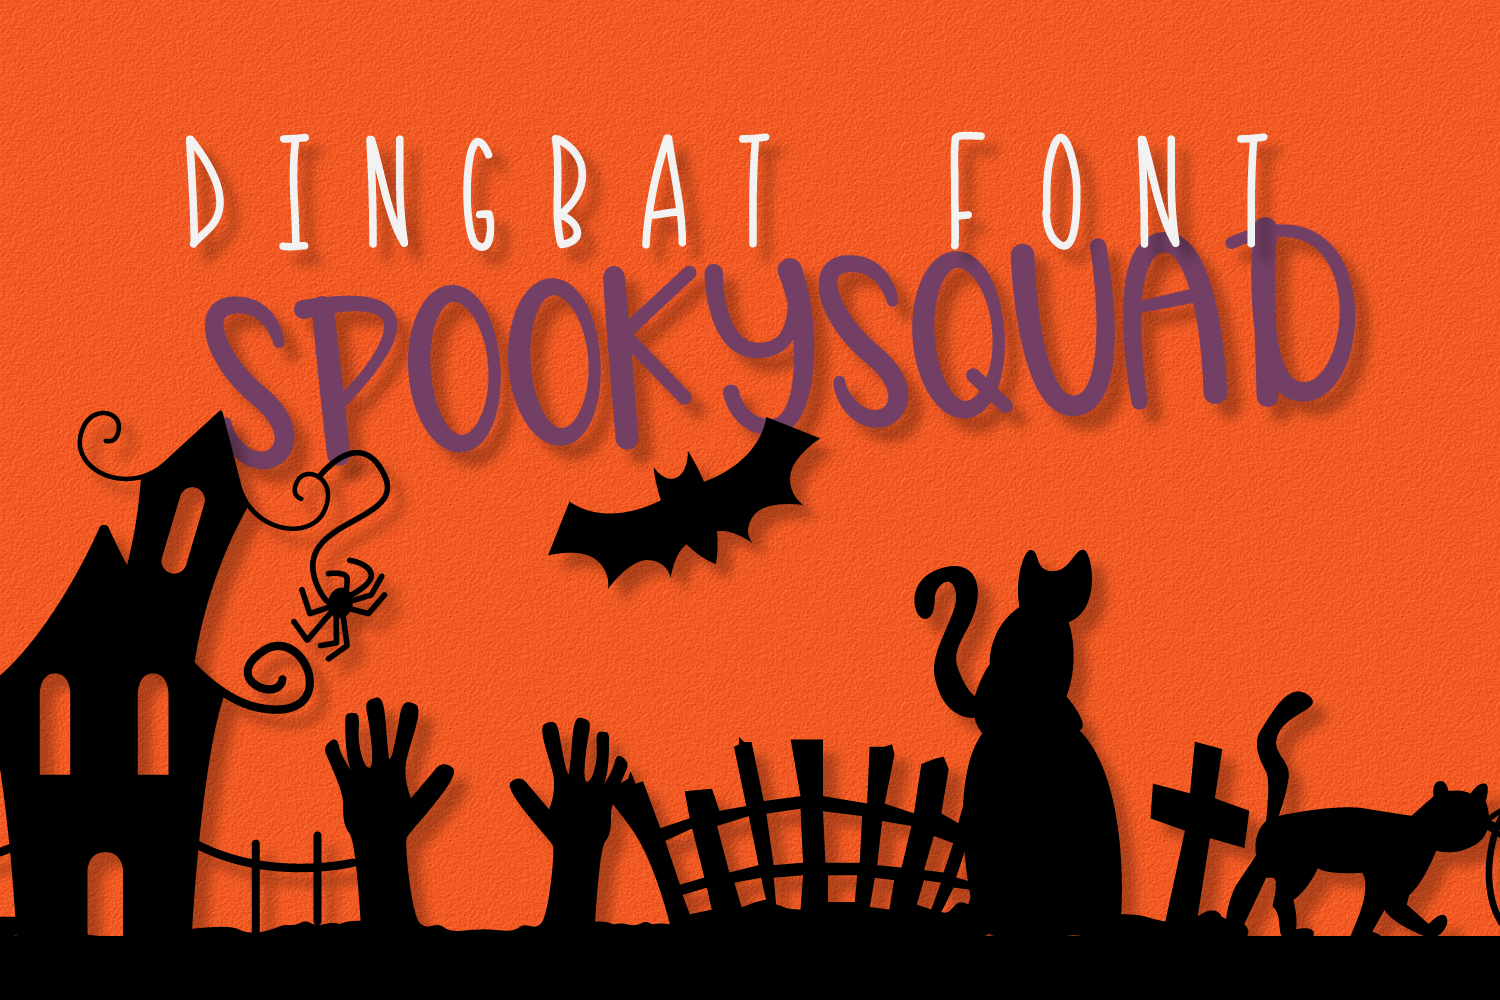 Spooky Squad - A Halloween Dingbat Font example image 1